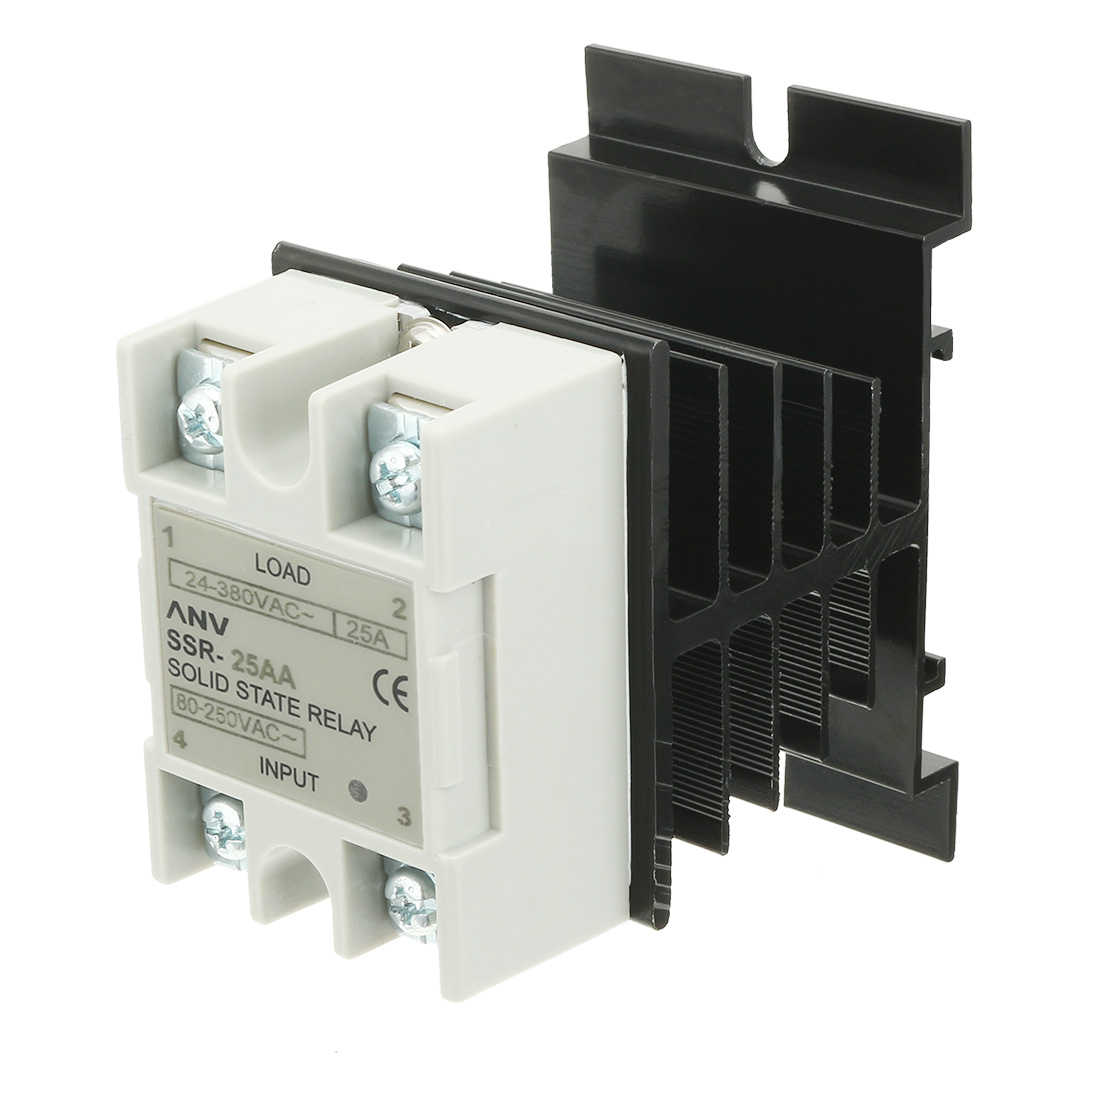 SSR-25AA AC 80-250V to 24V-380V Solid State Relay + Heat Sink + Thermal Compound